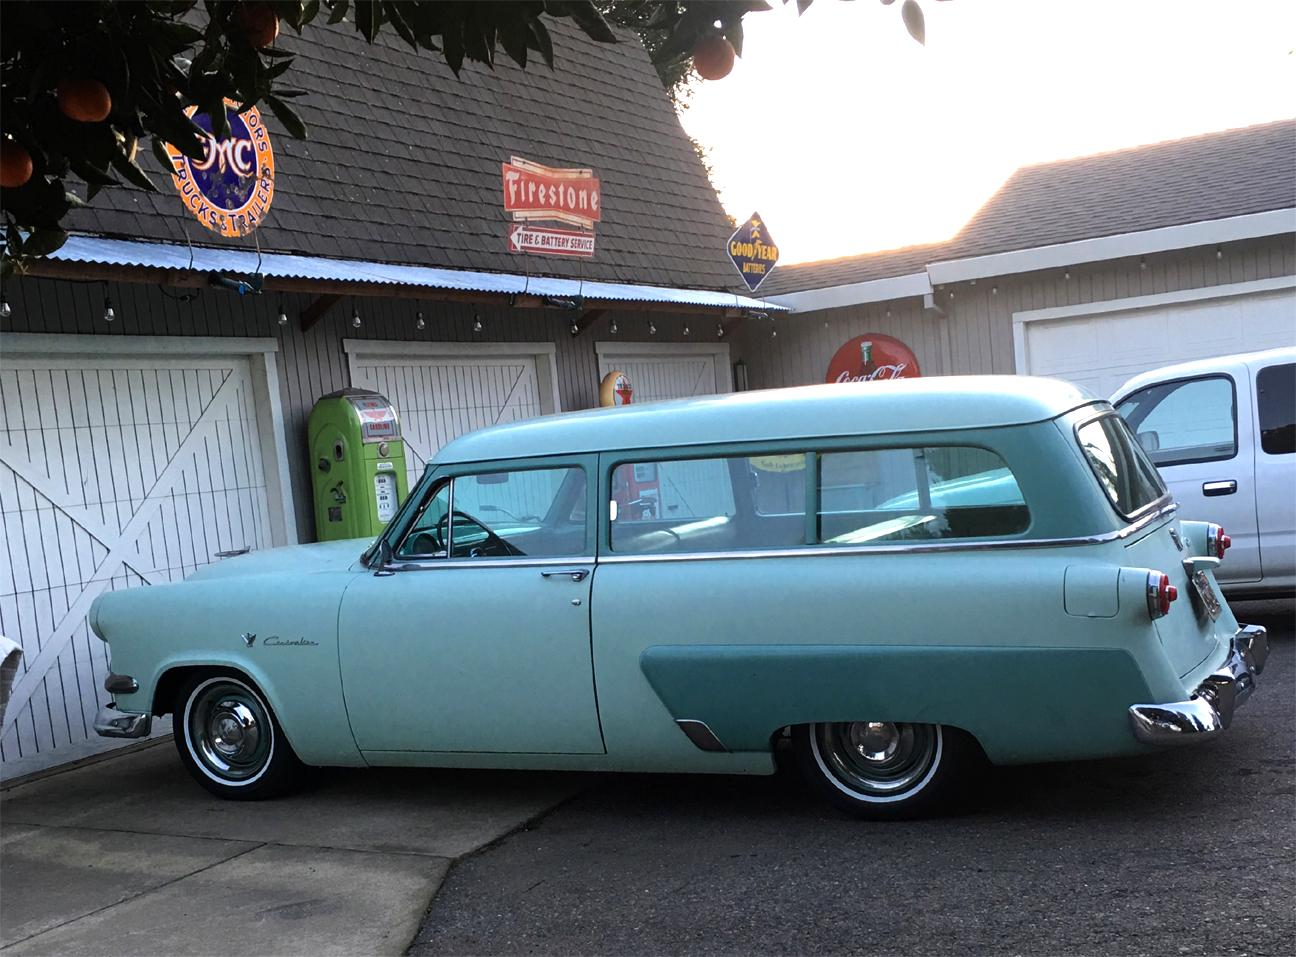 1954 Ford Wagon new tires.jpg